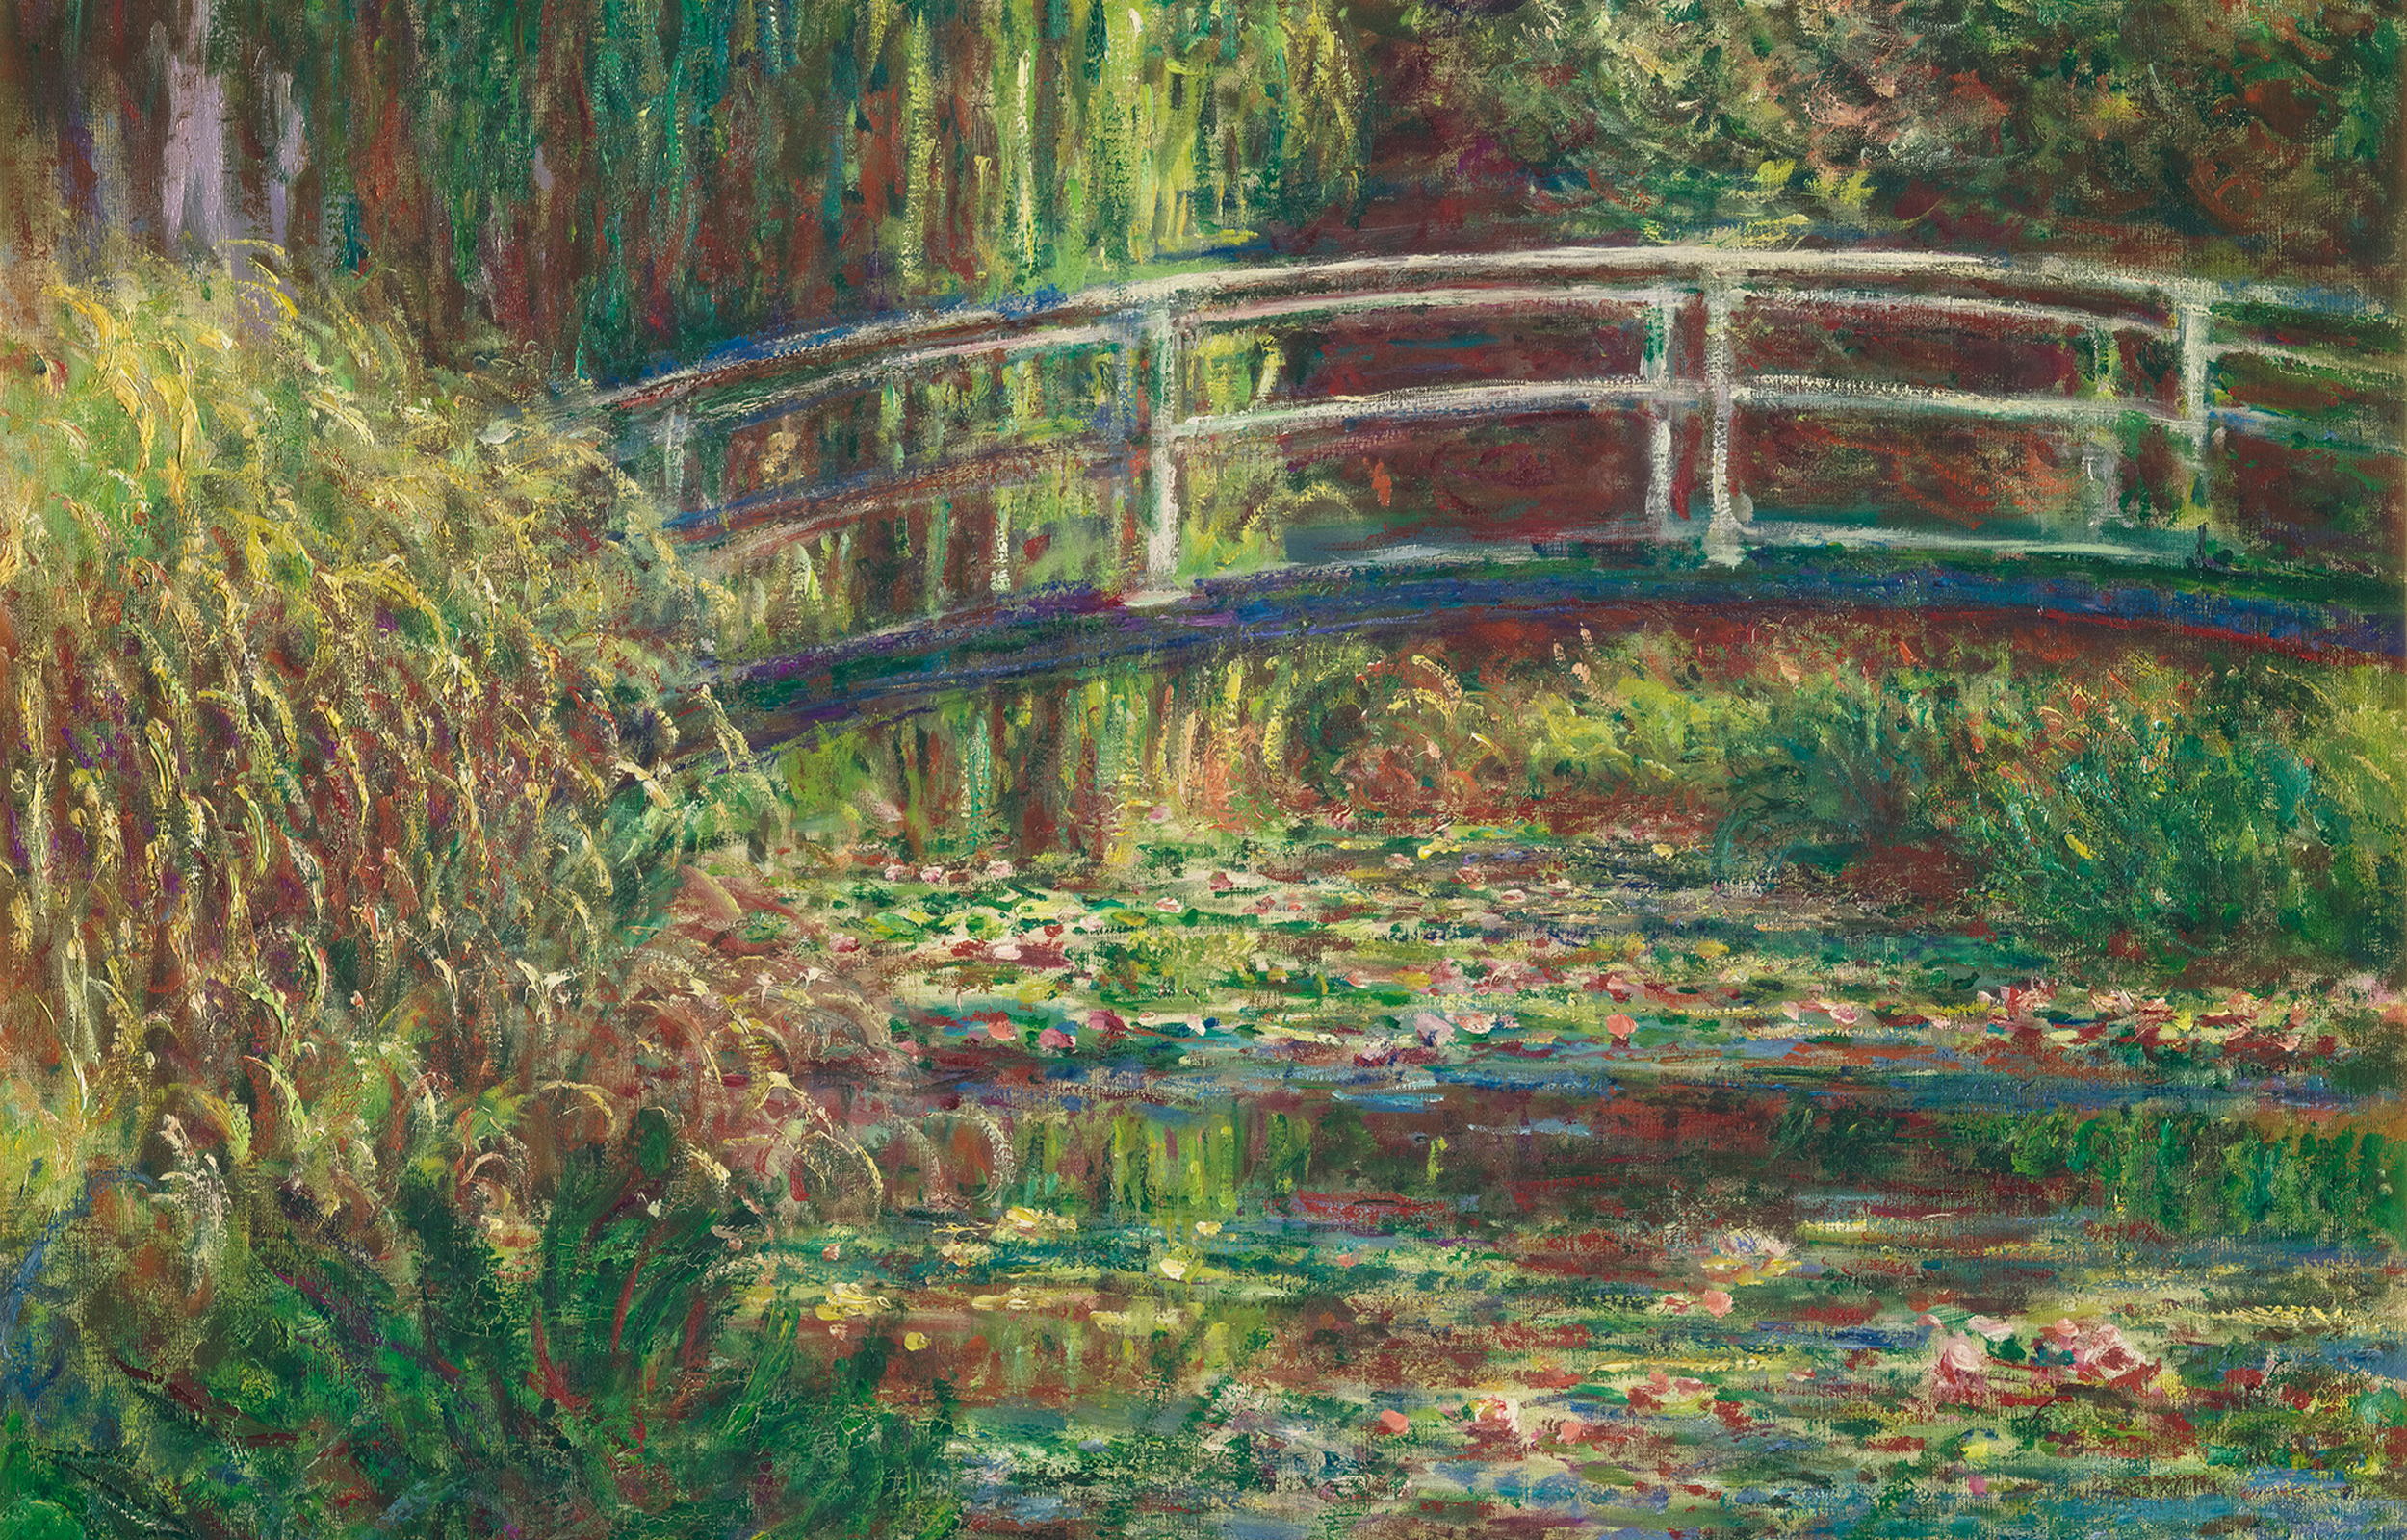 Monet's painting of water lilies and bridge